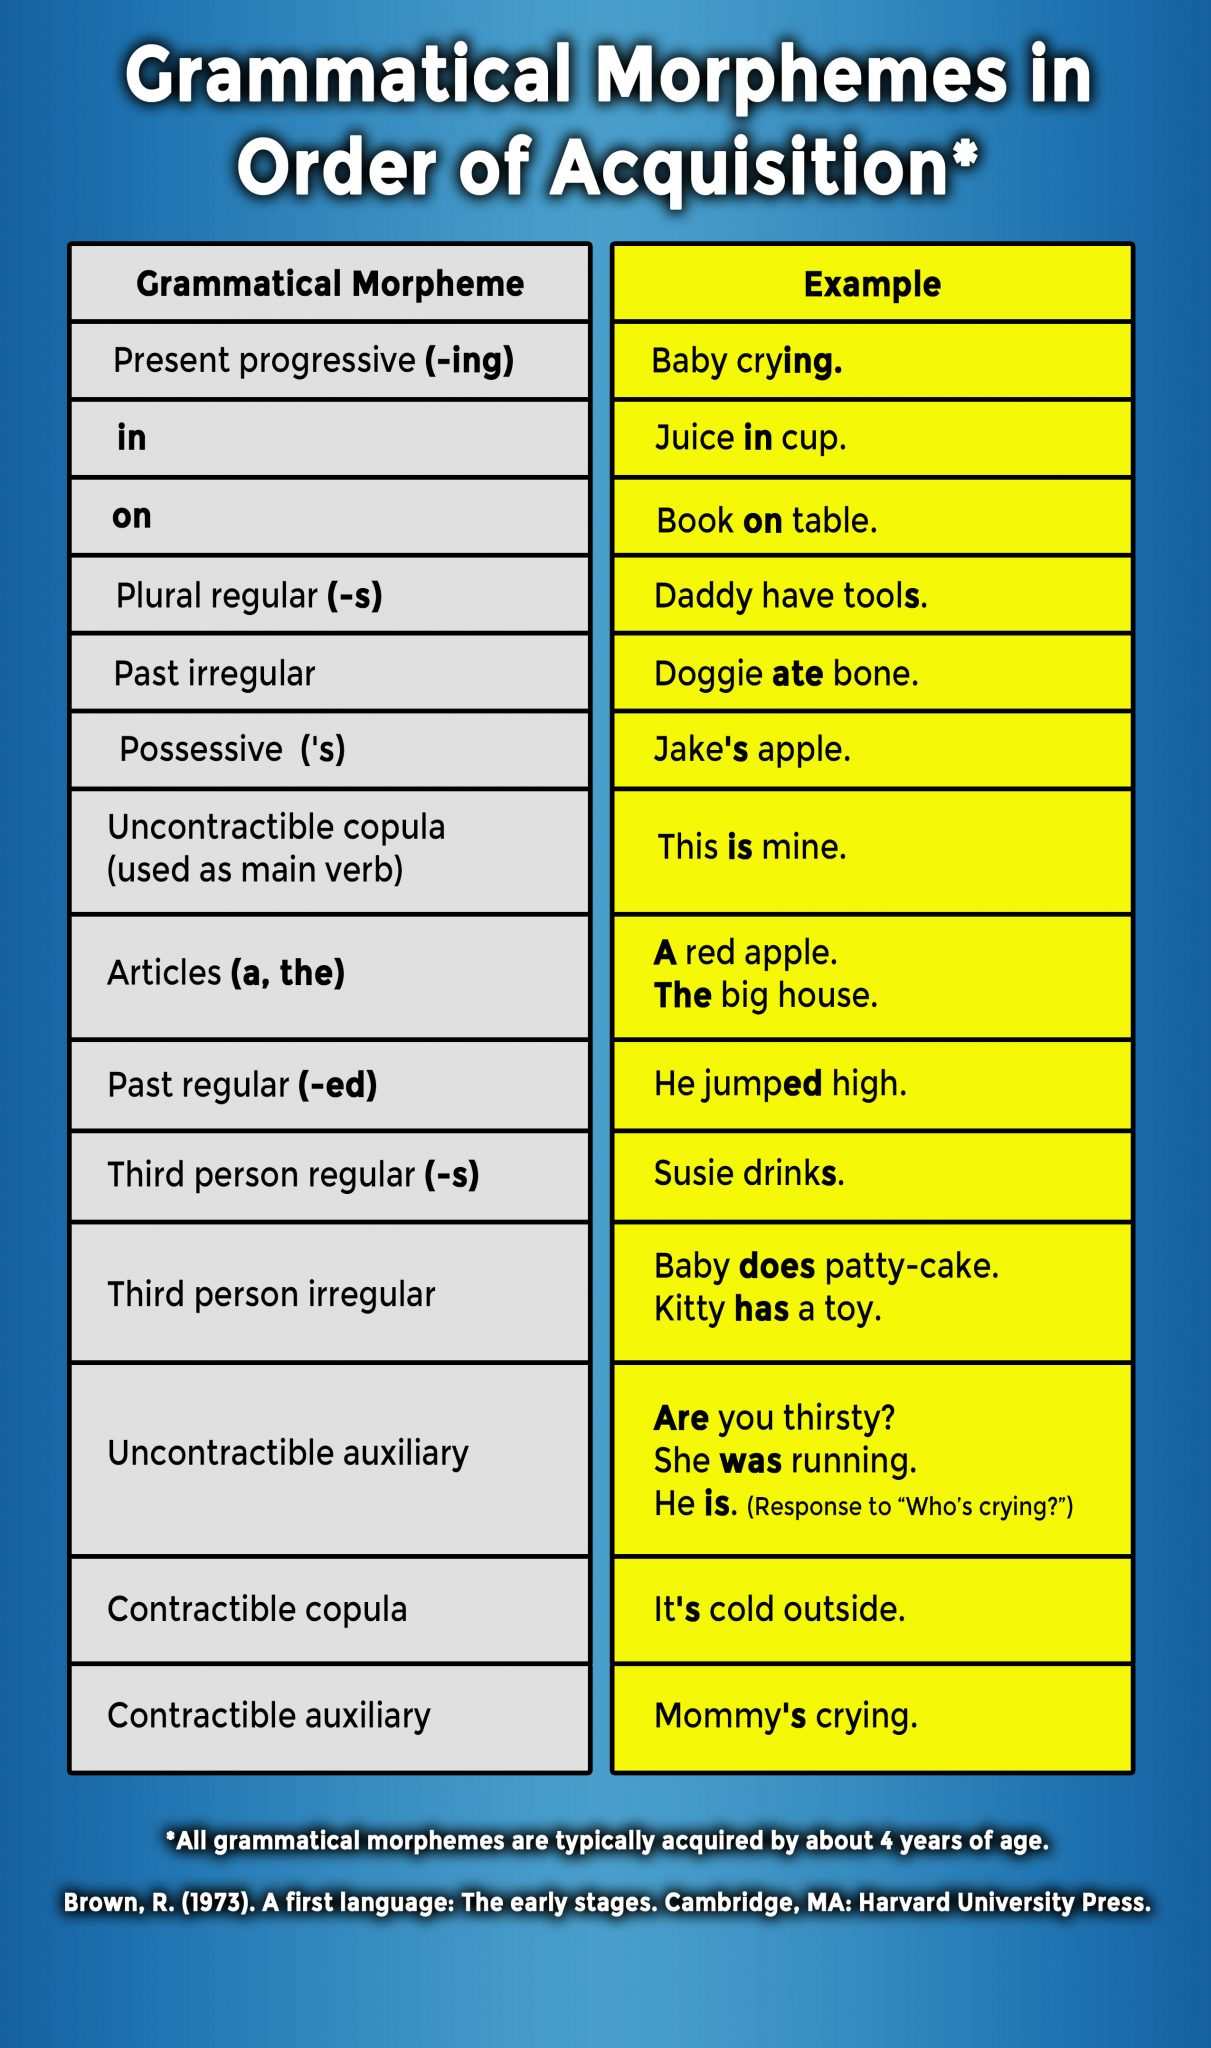 Grammatical Morphemes in Order of Acquisition 1211x2048 1 1